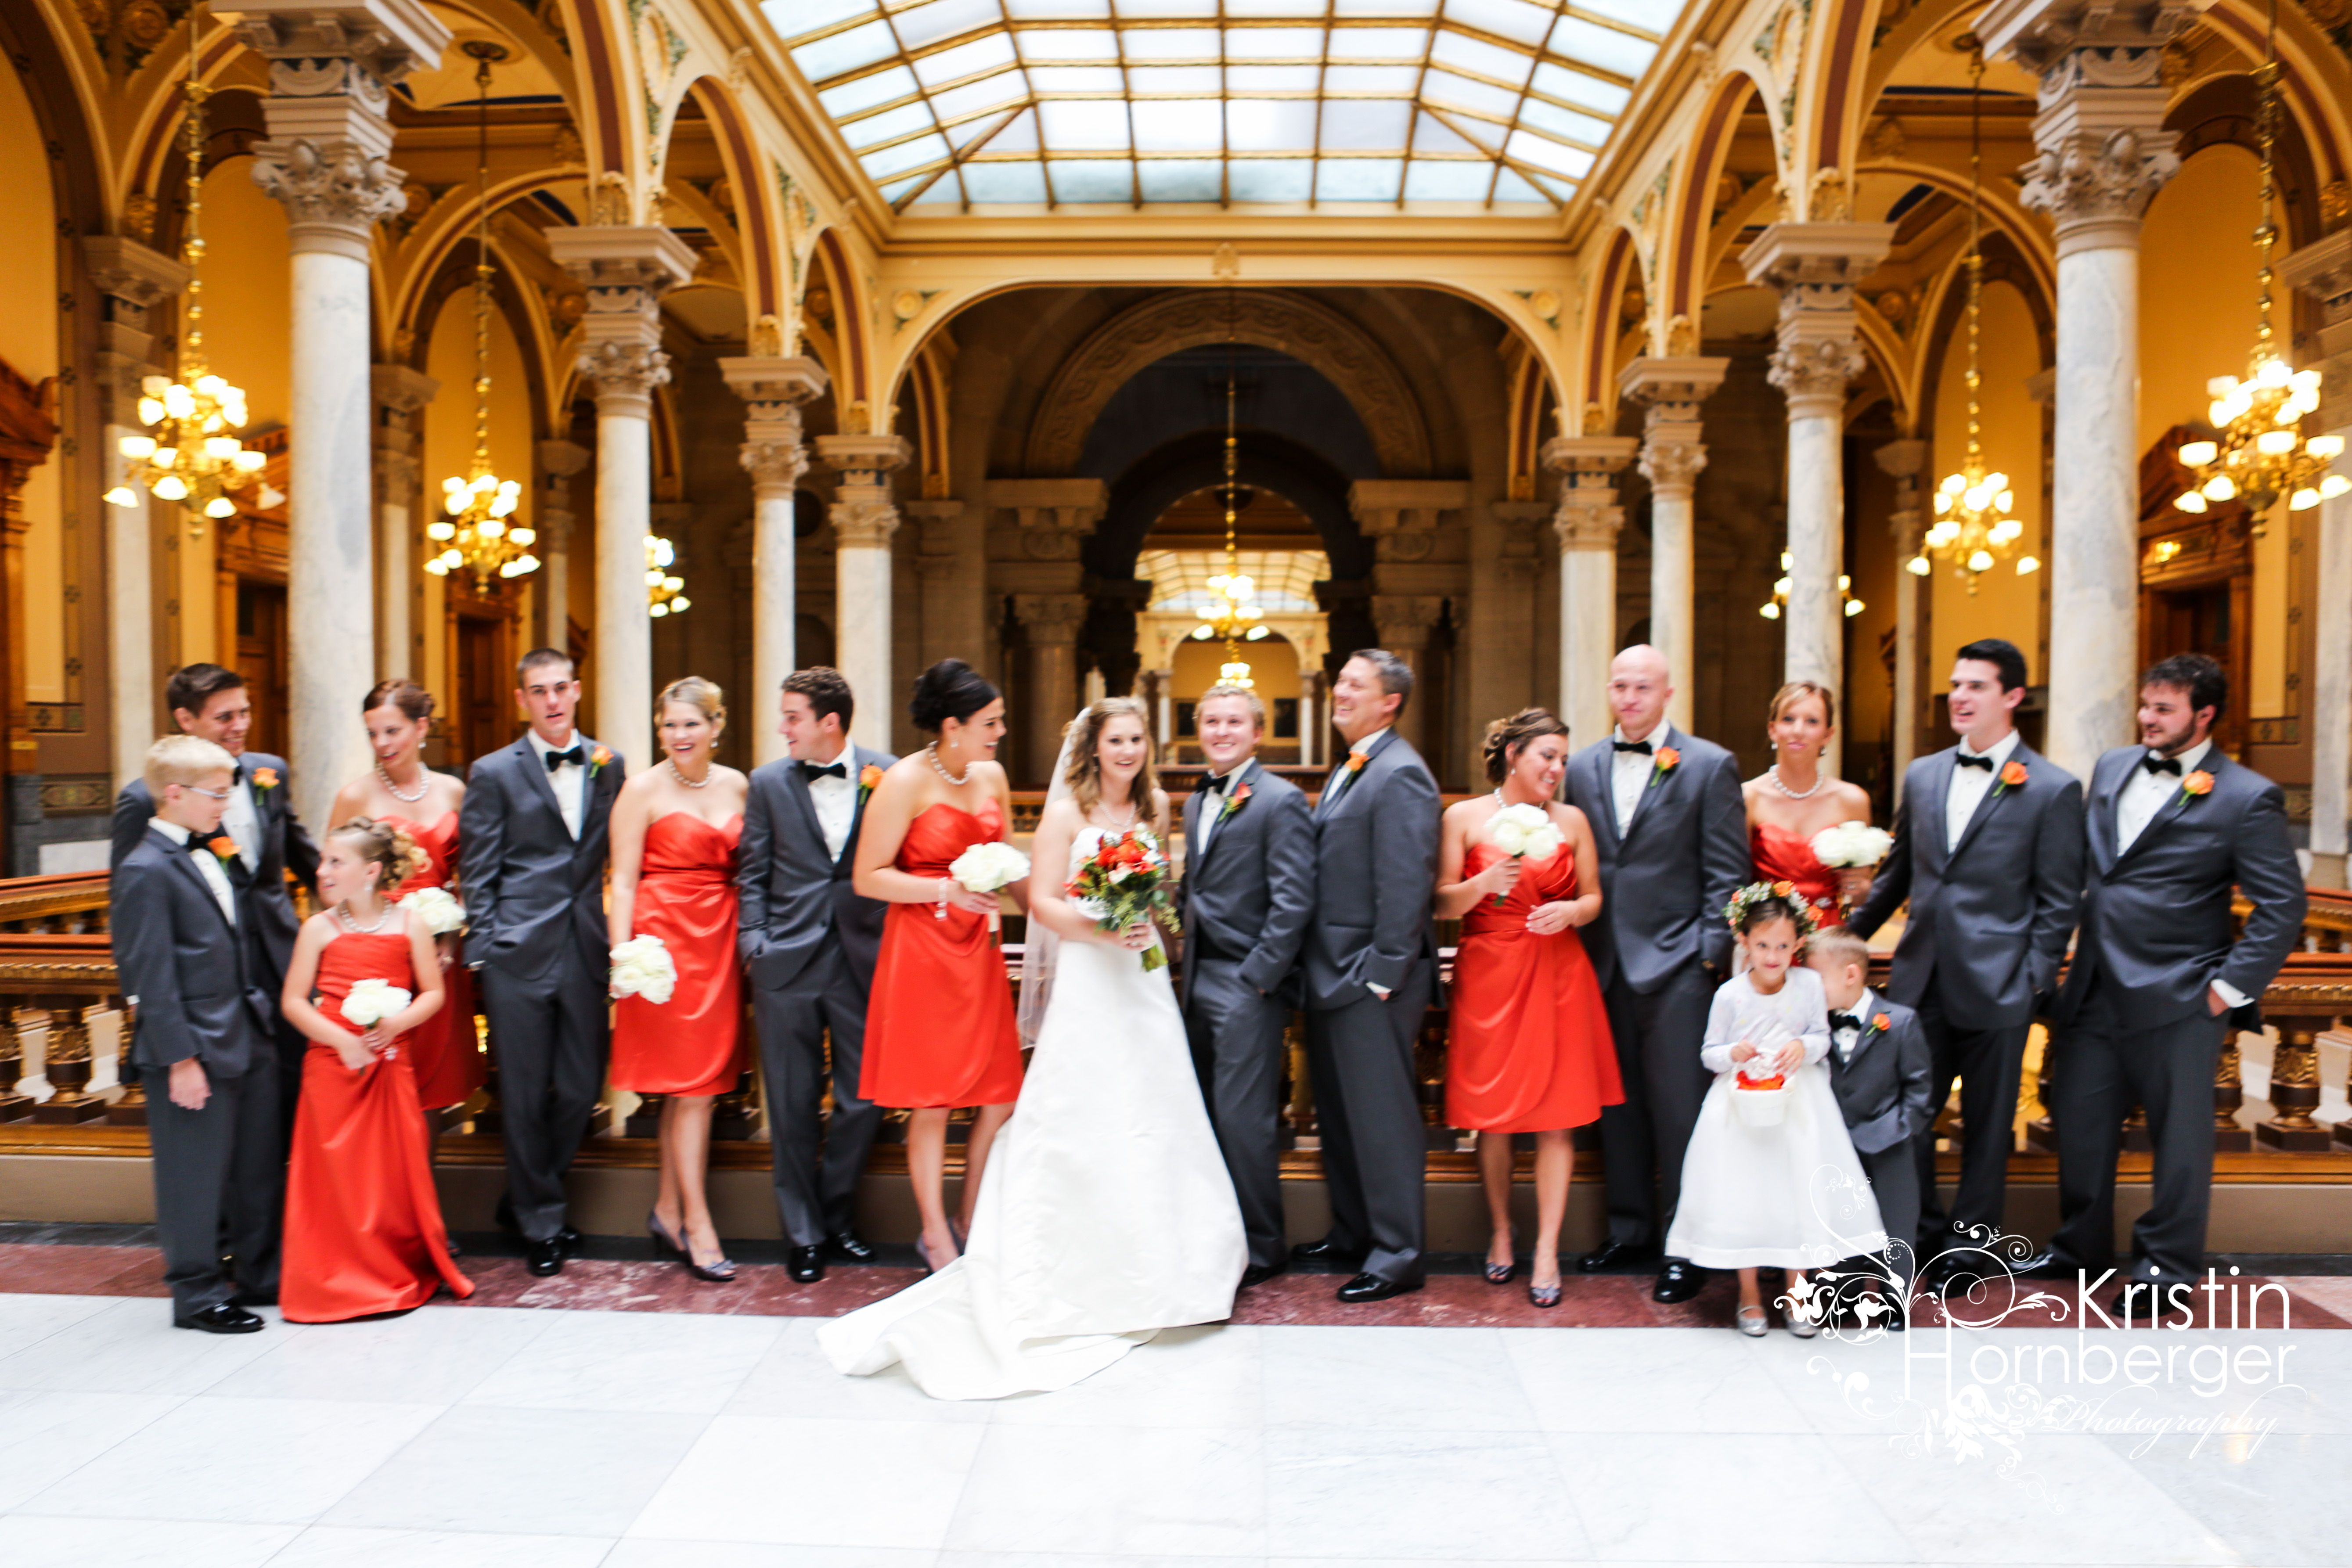 Weddings Shauna Zack Married Having Fun At The Indiana State House Indy